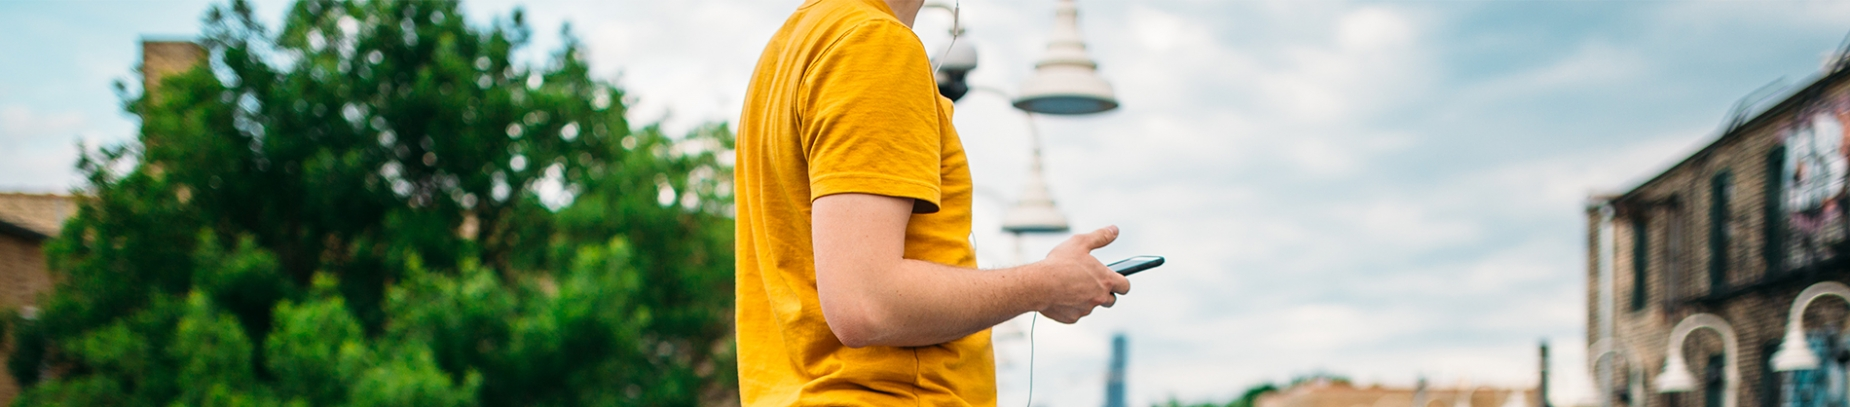 Man in a yellow t-shirt on his phone